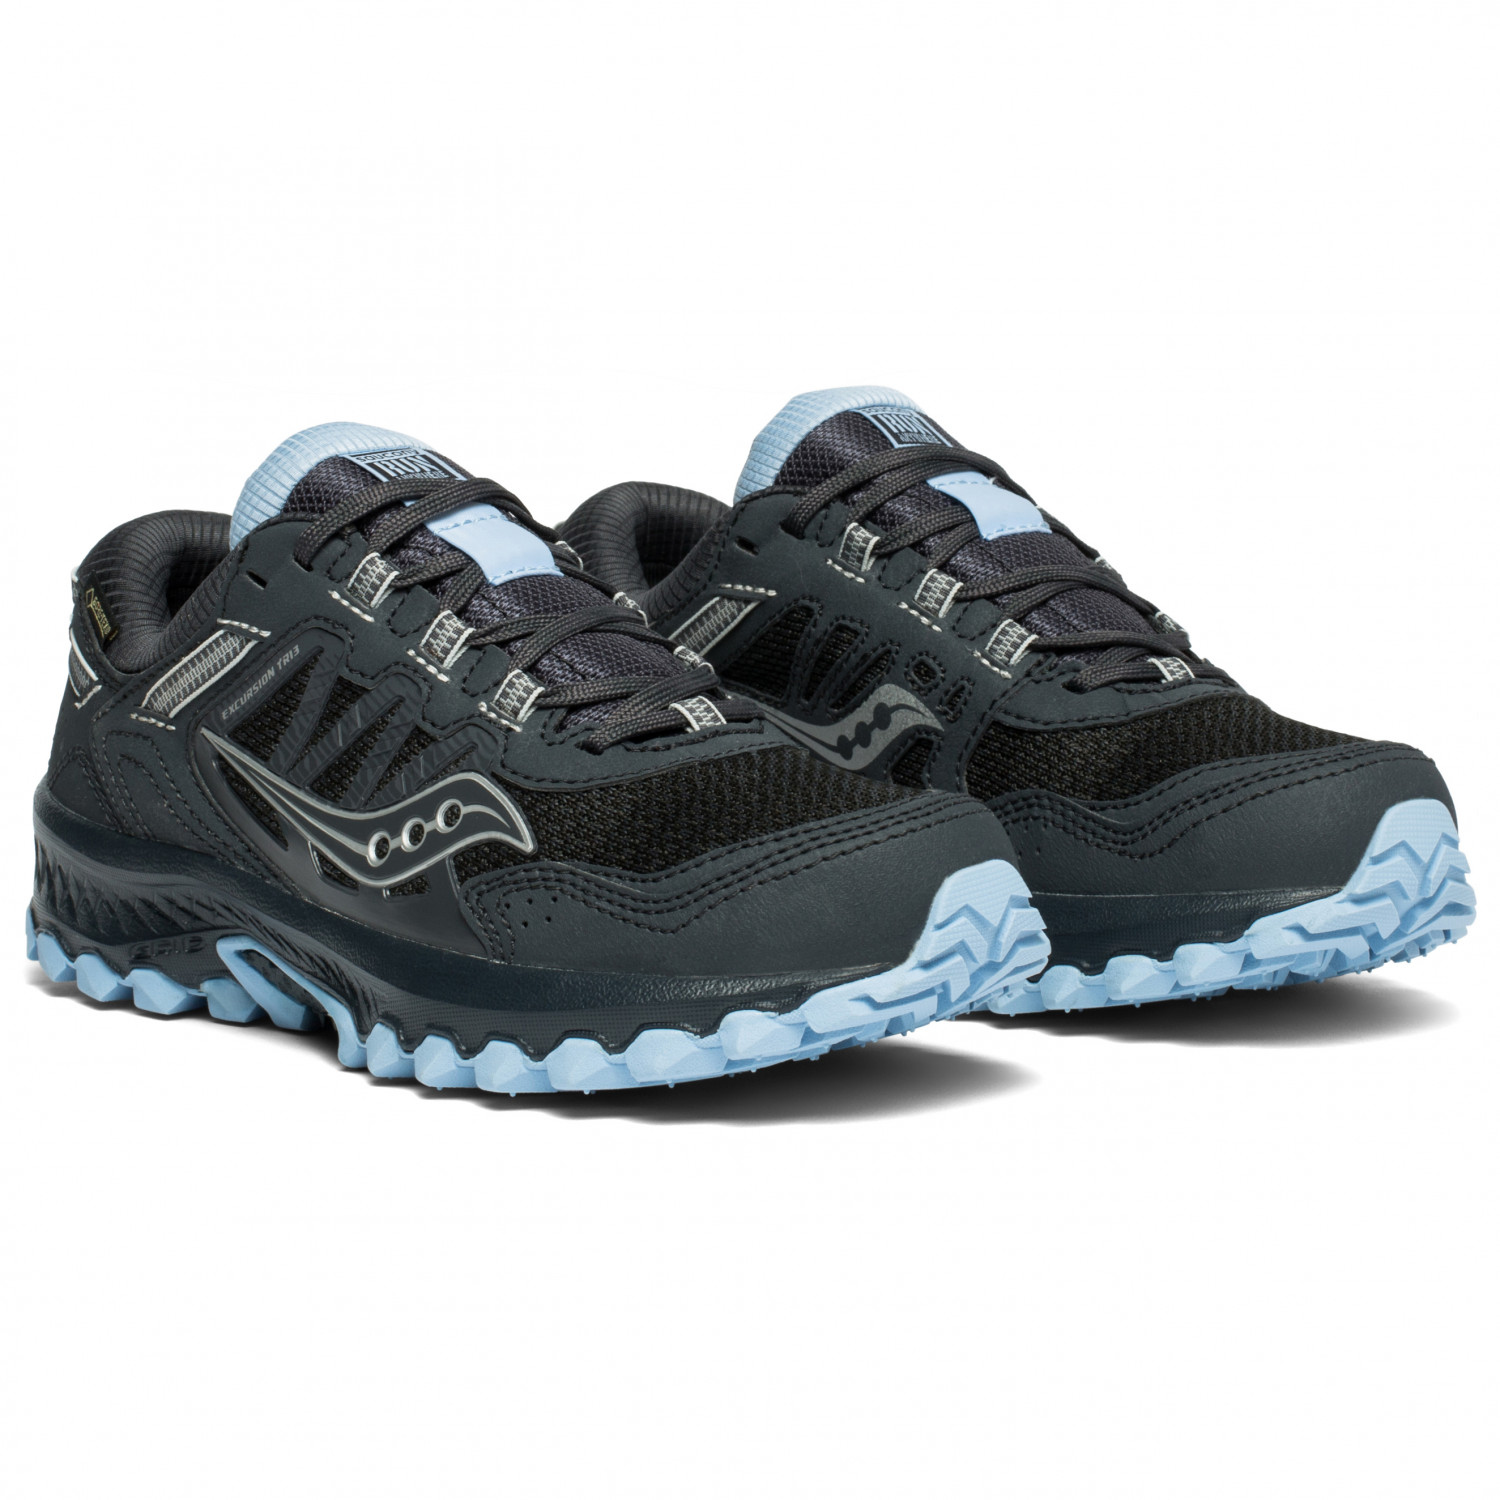 saucony gtx womens, OFF 78%,Free delivery!